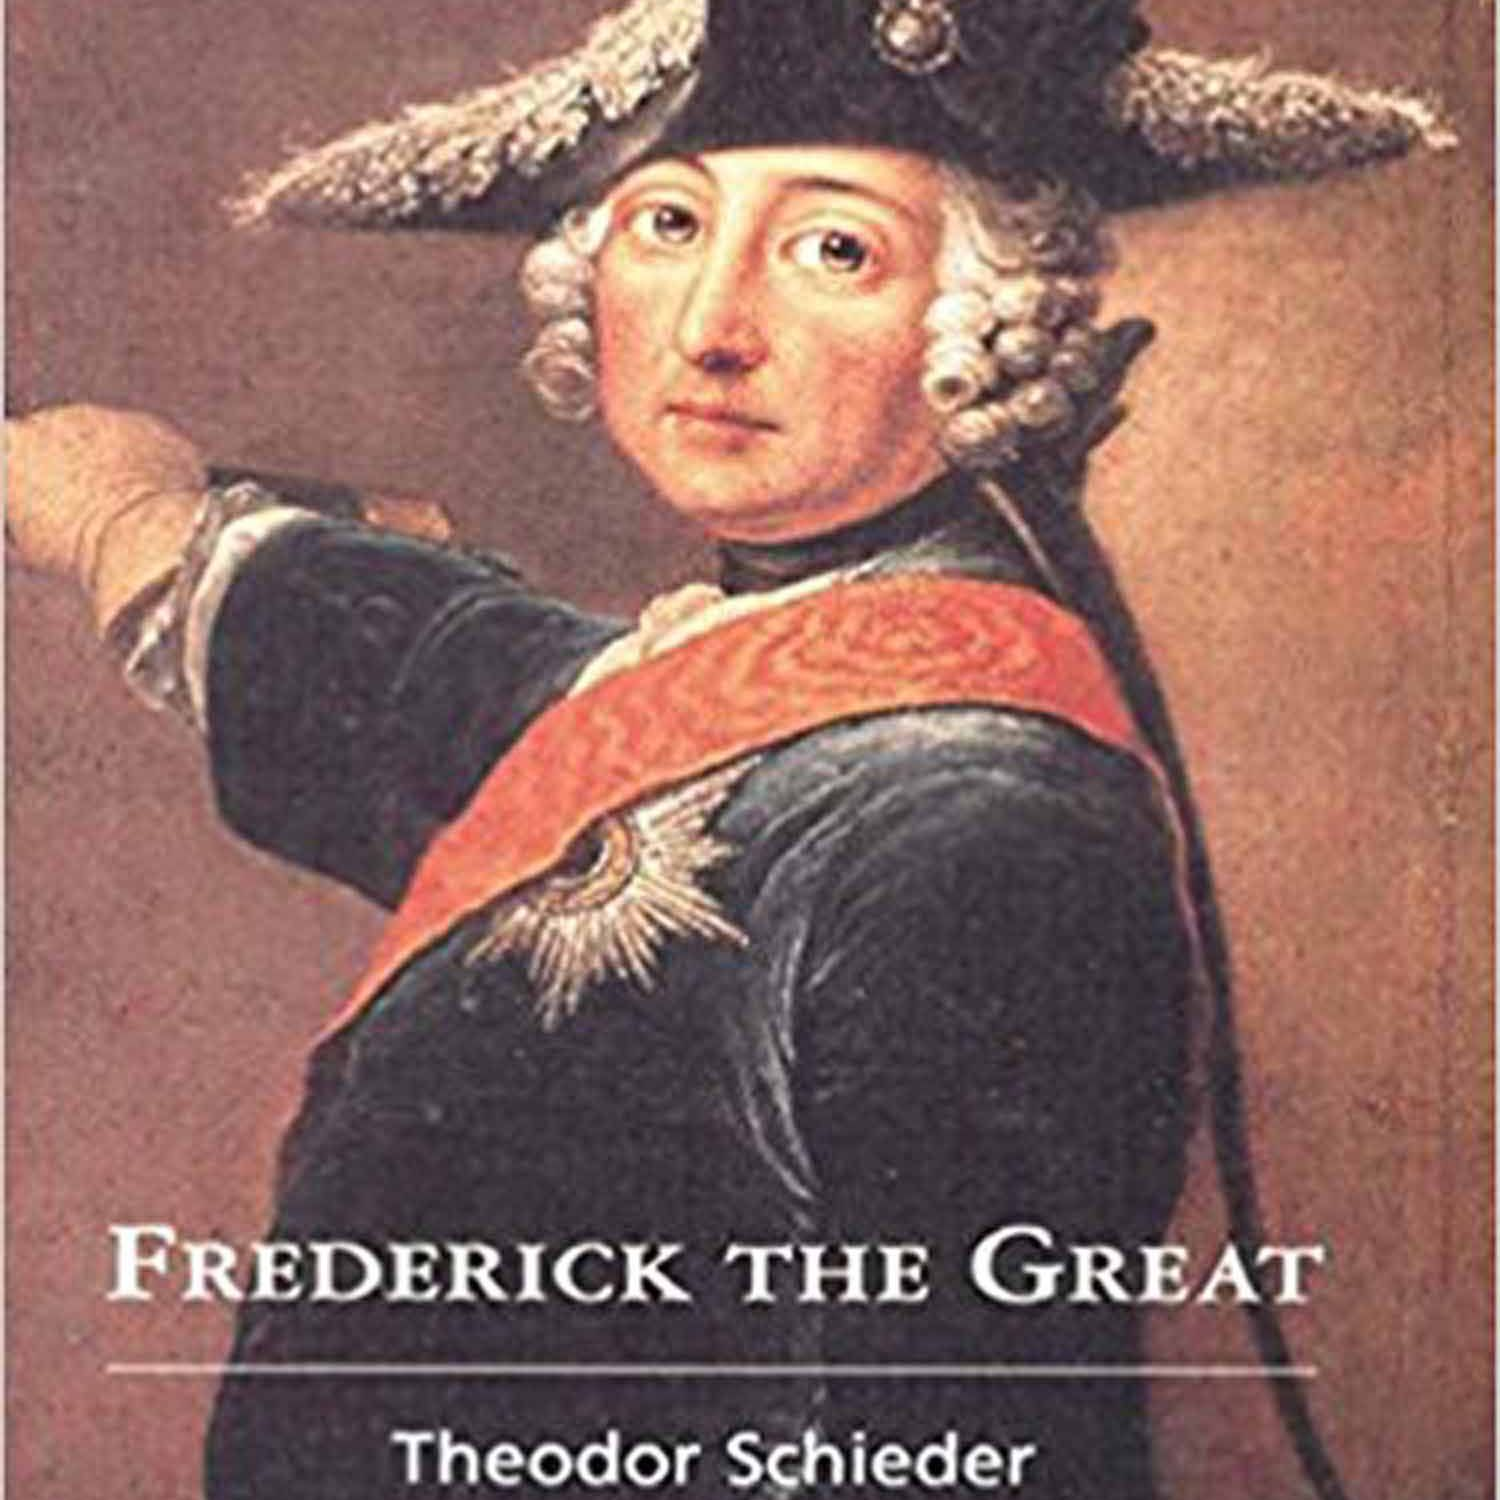 Frederick the Great by Theodor Schieder, trans. Sabina Krause